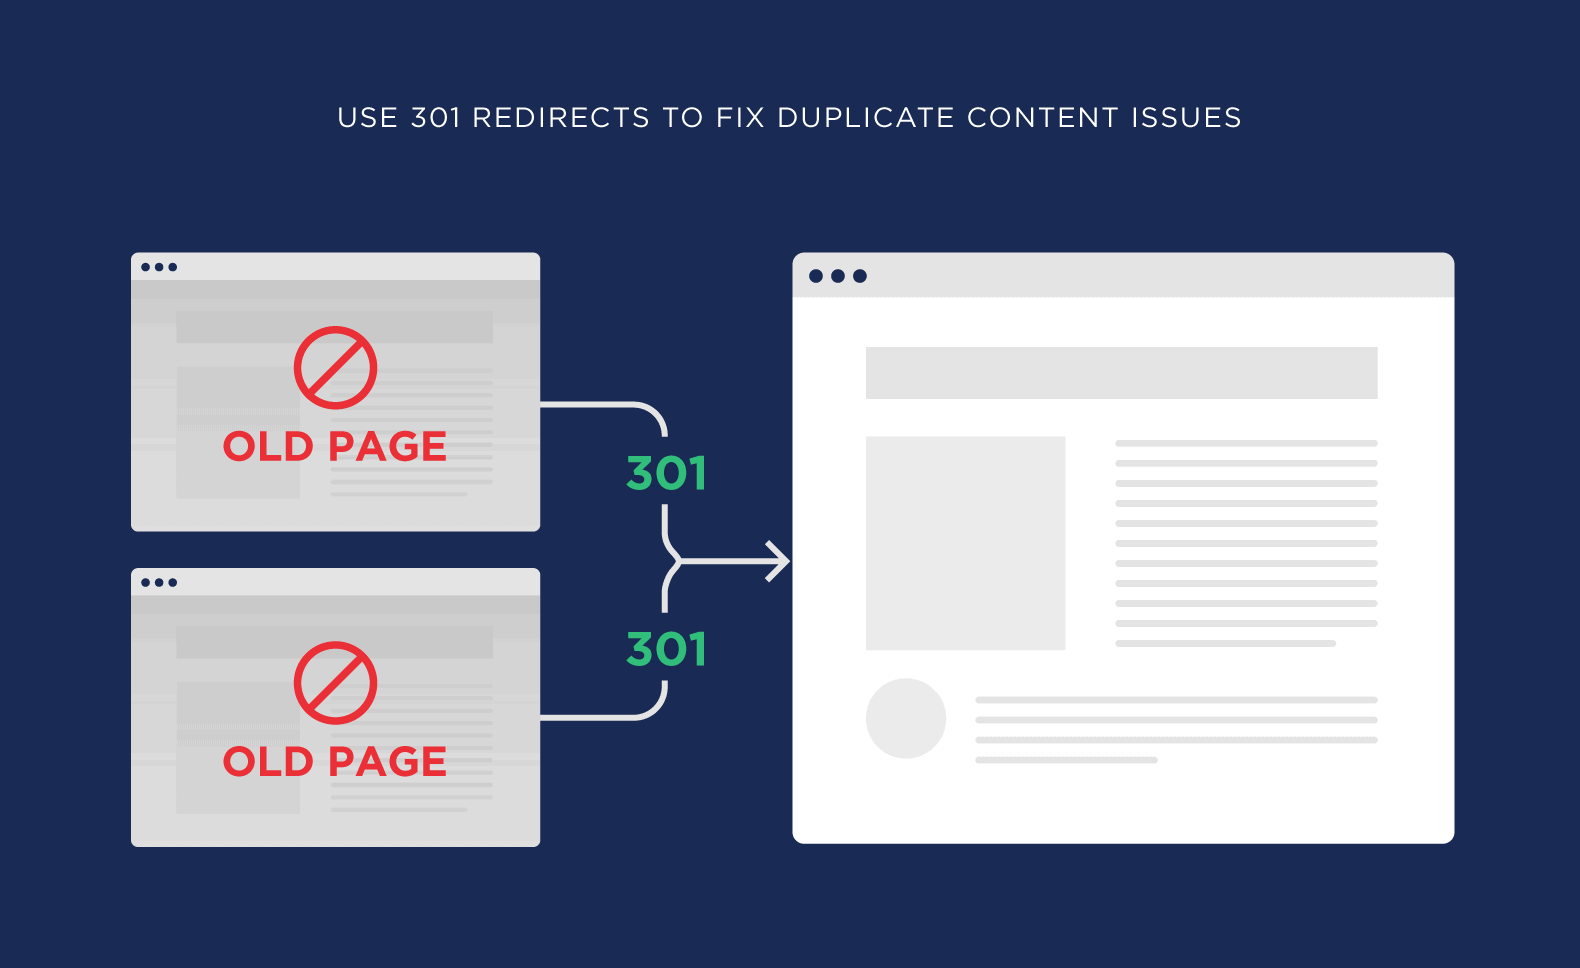 Use 301 redirects to fix duplicate content issues